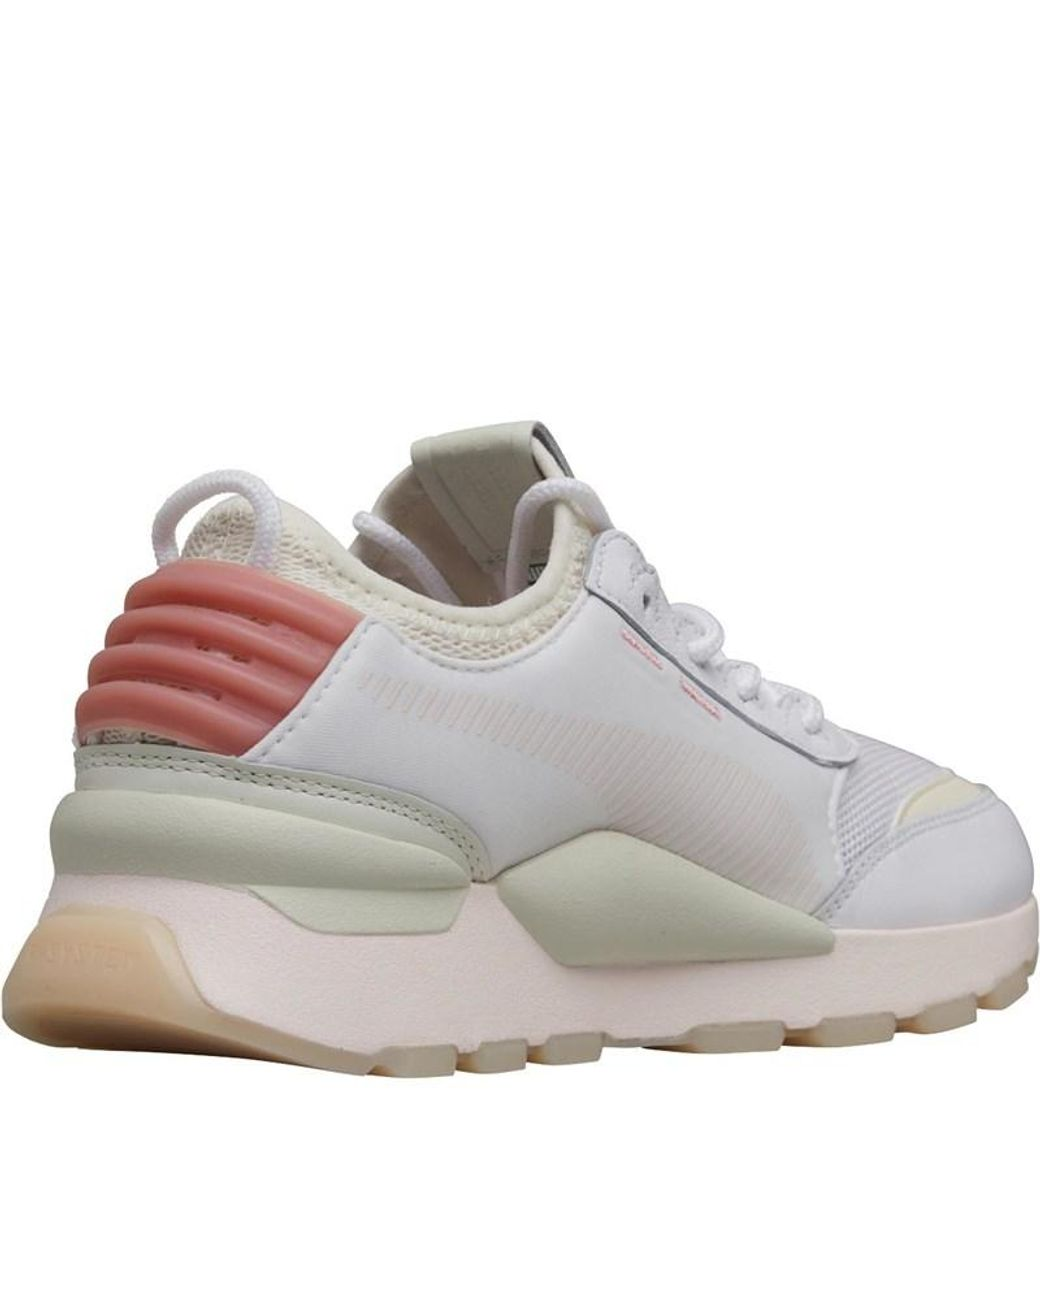 PUMA Rubber Rs 0 Tracks Trainers White/marshmallow - Lyst